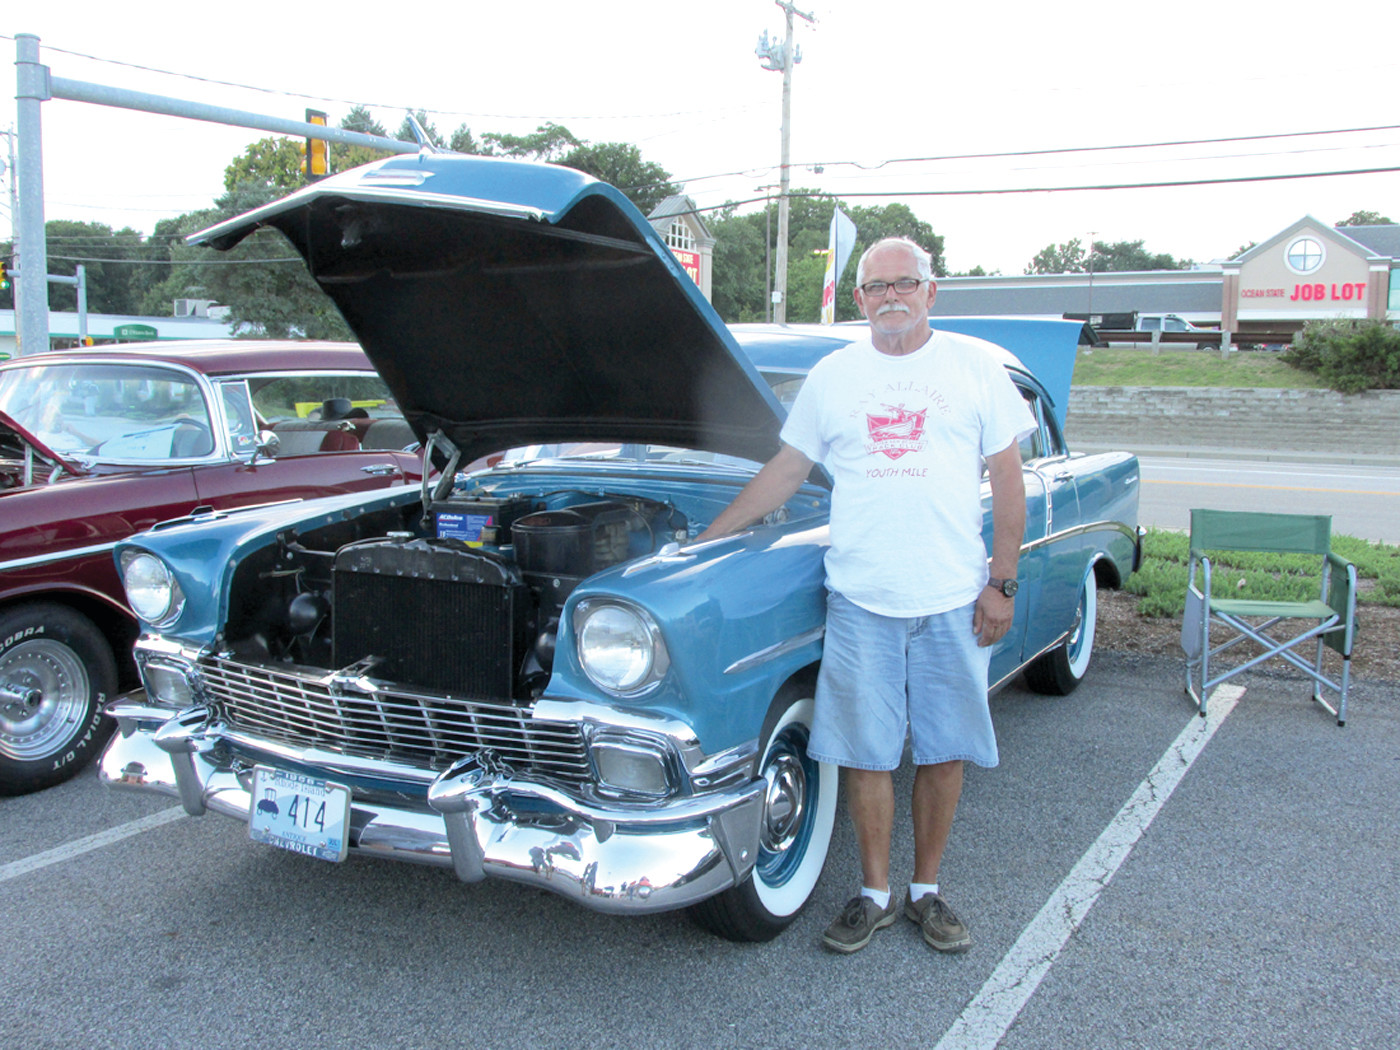 CHUDDY'S CHEVY: Rodman Chuddy, who lives in Burrillville, is the proud owner of this 1956 Chevrolet 210 that's an excellent example of the quality of vintage vehicles that sow up for Thursday night's Cruisin' for a Cause in Johnston